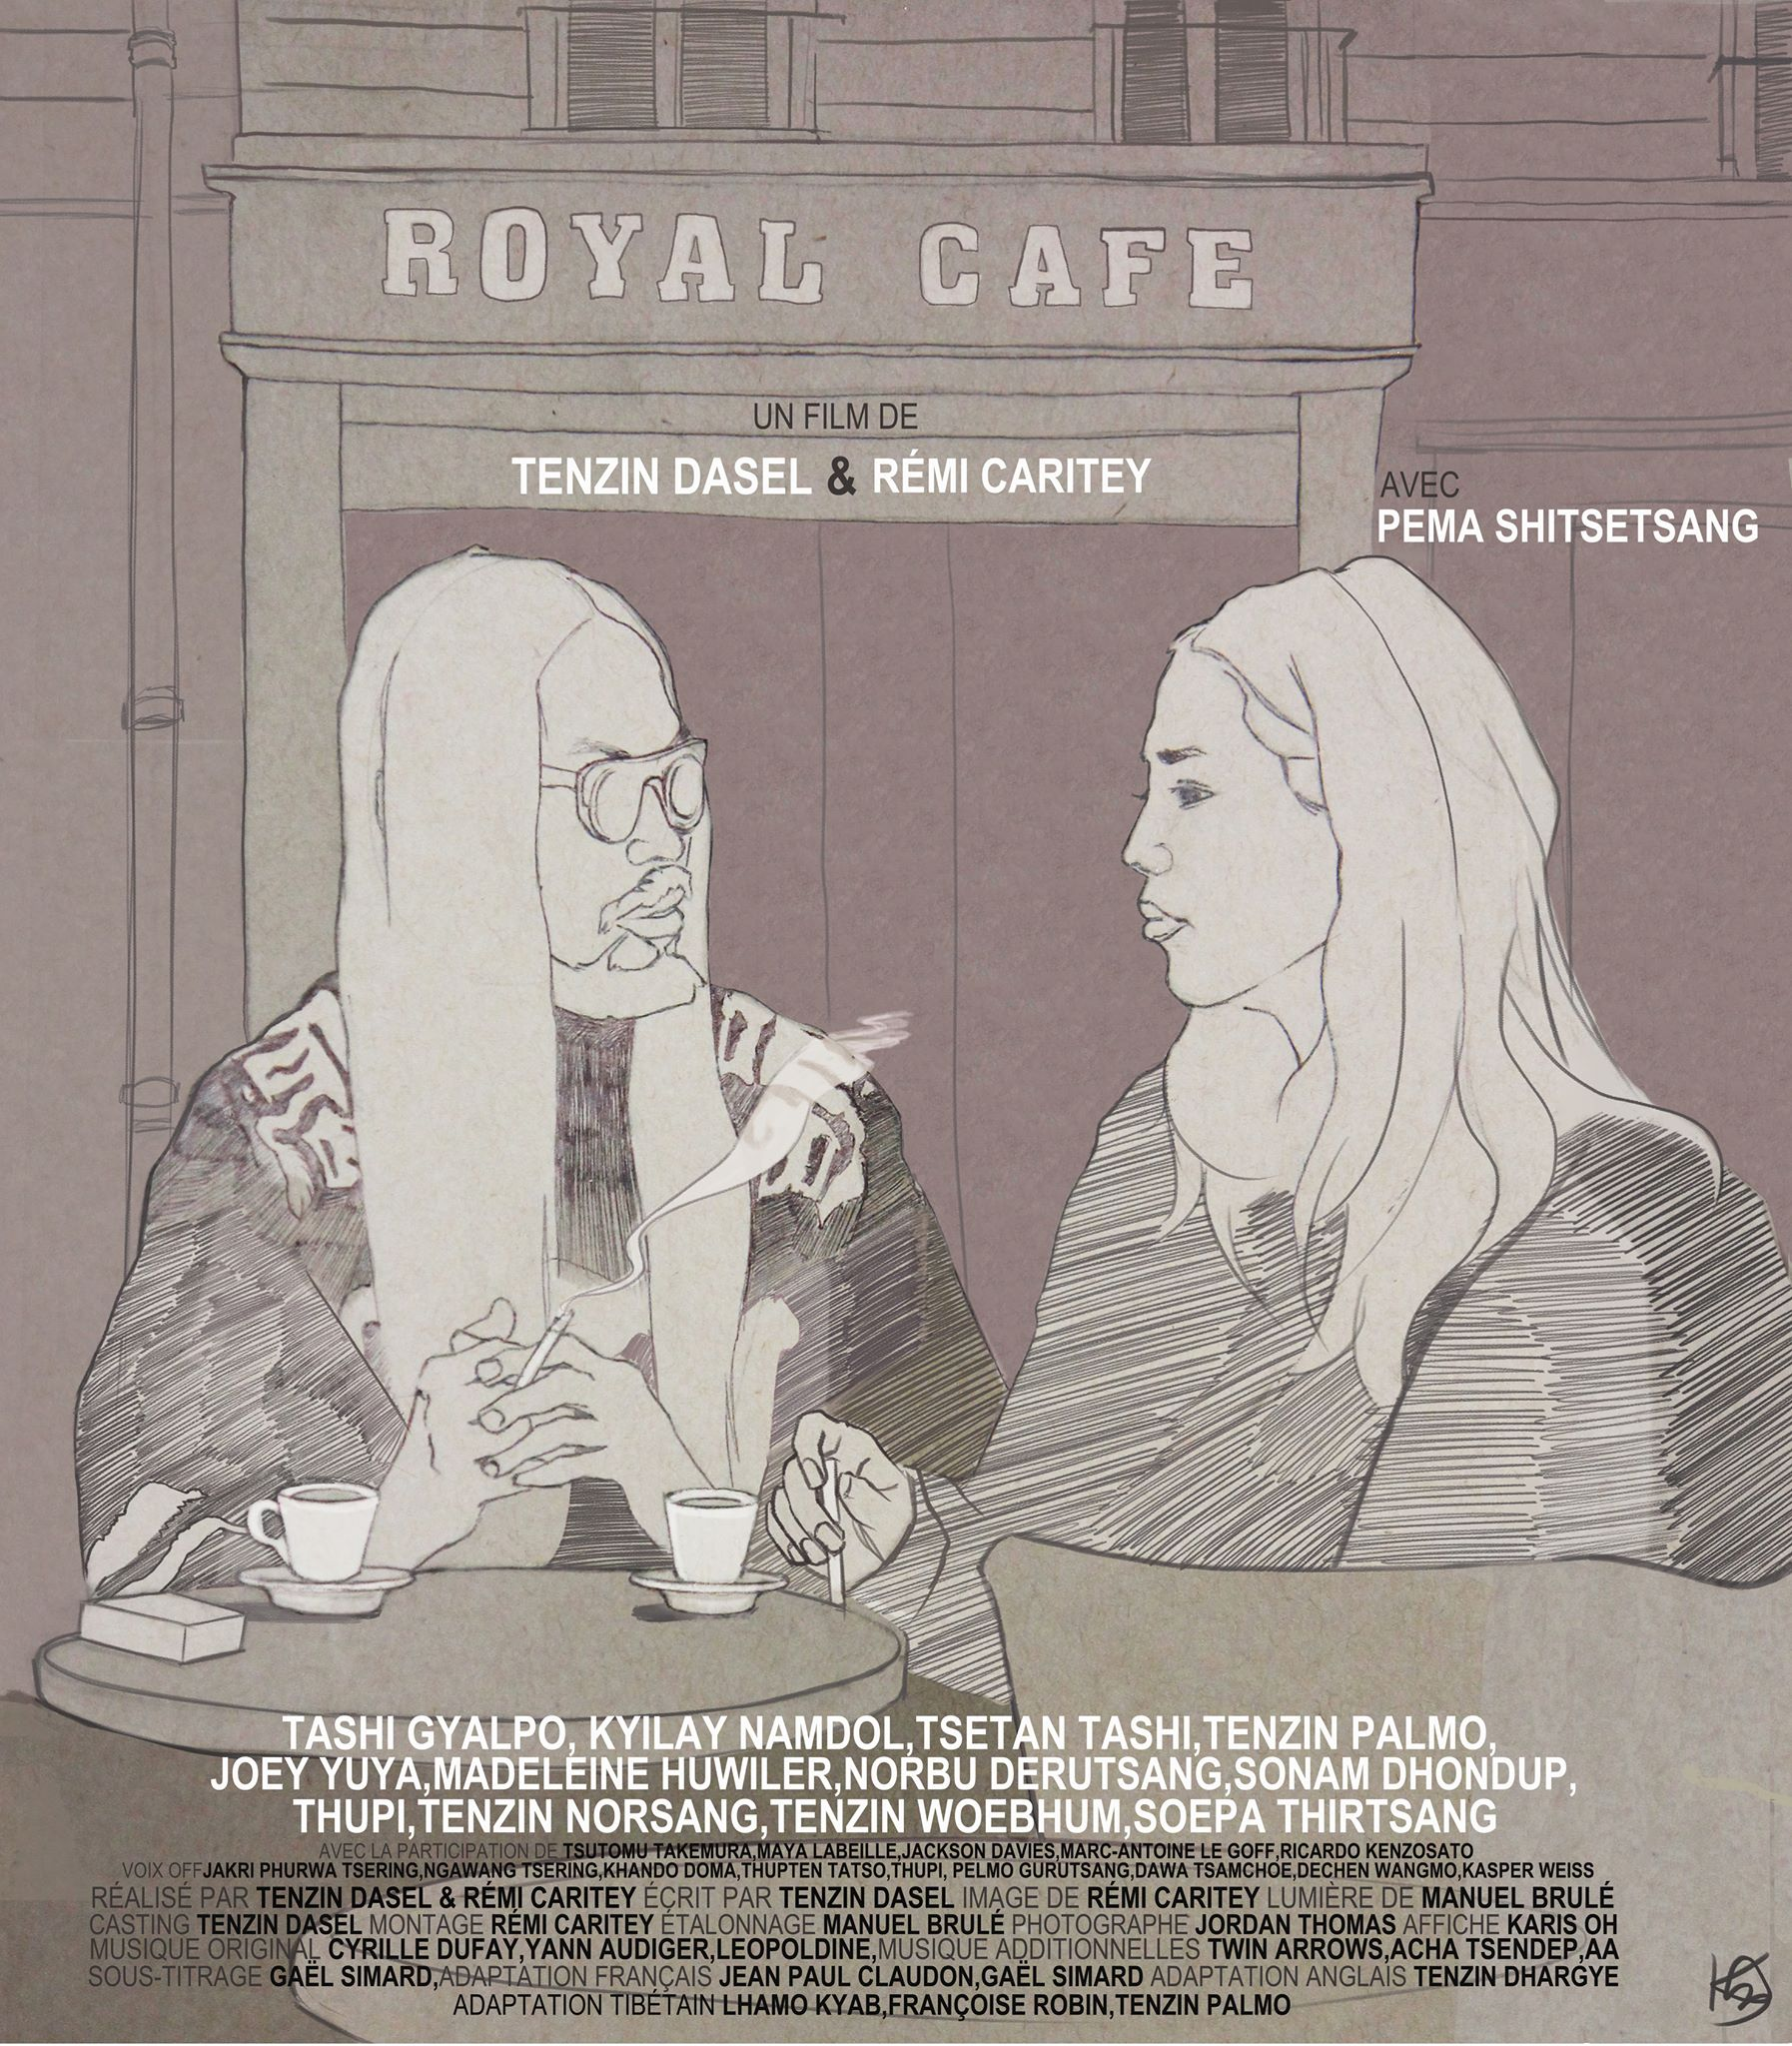 royal cafe.jpg